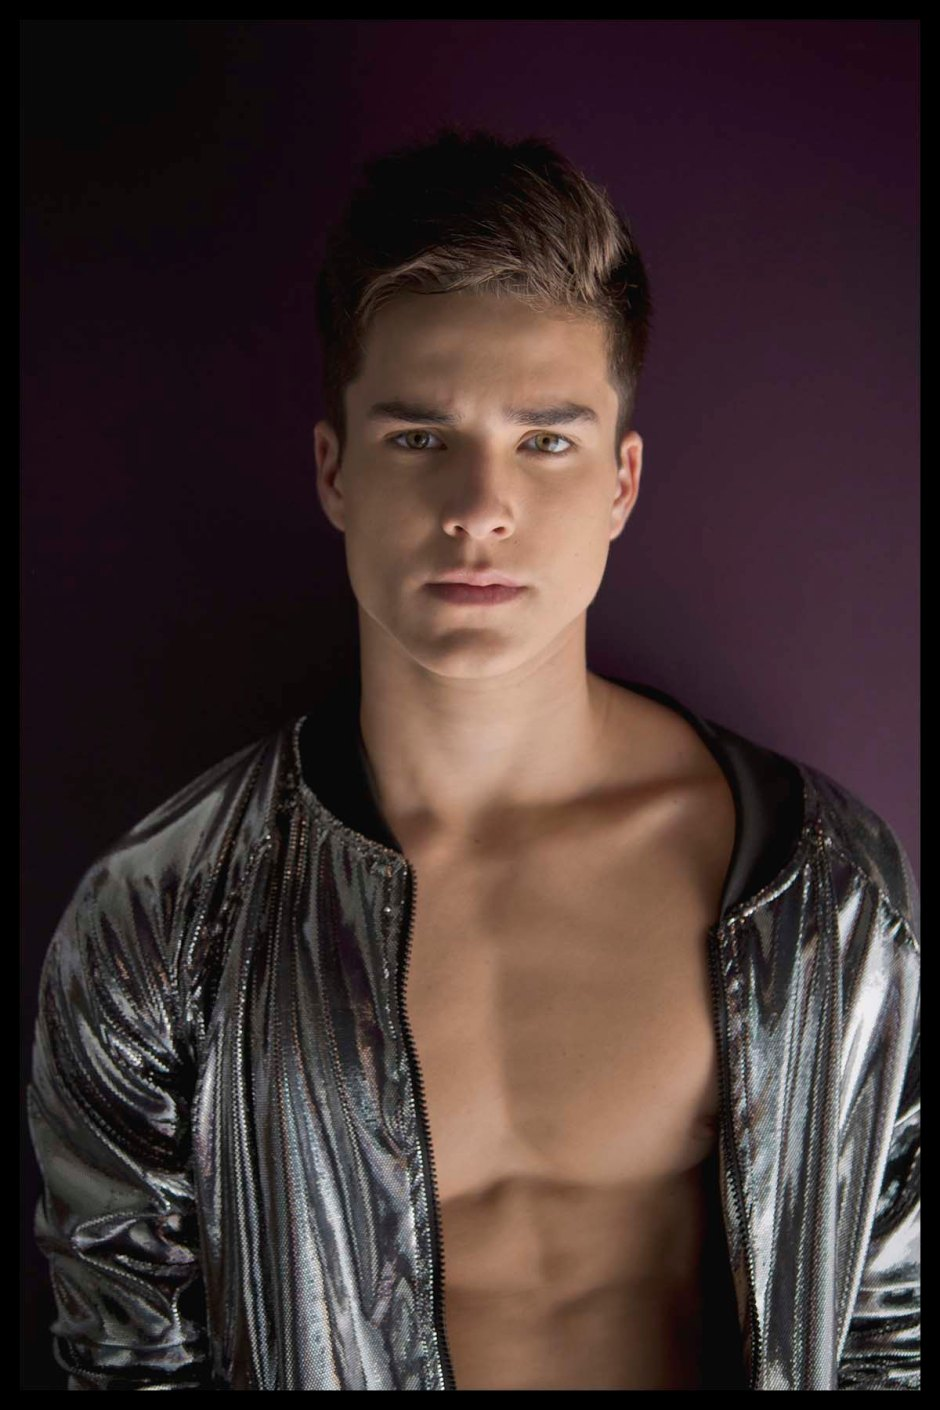 Pedro Maia by Filipe Galgani for Brazilian Male Model_009